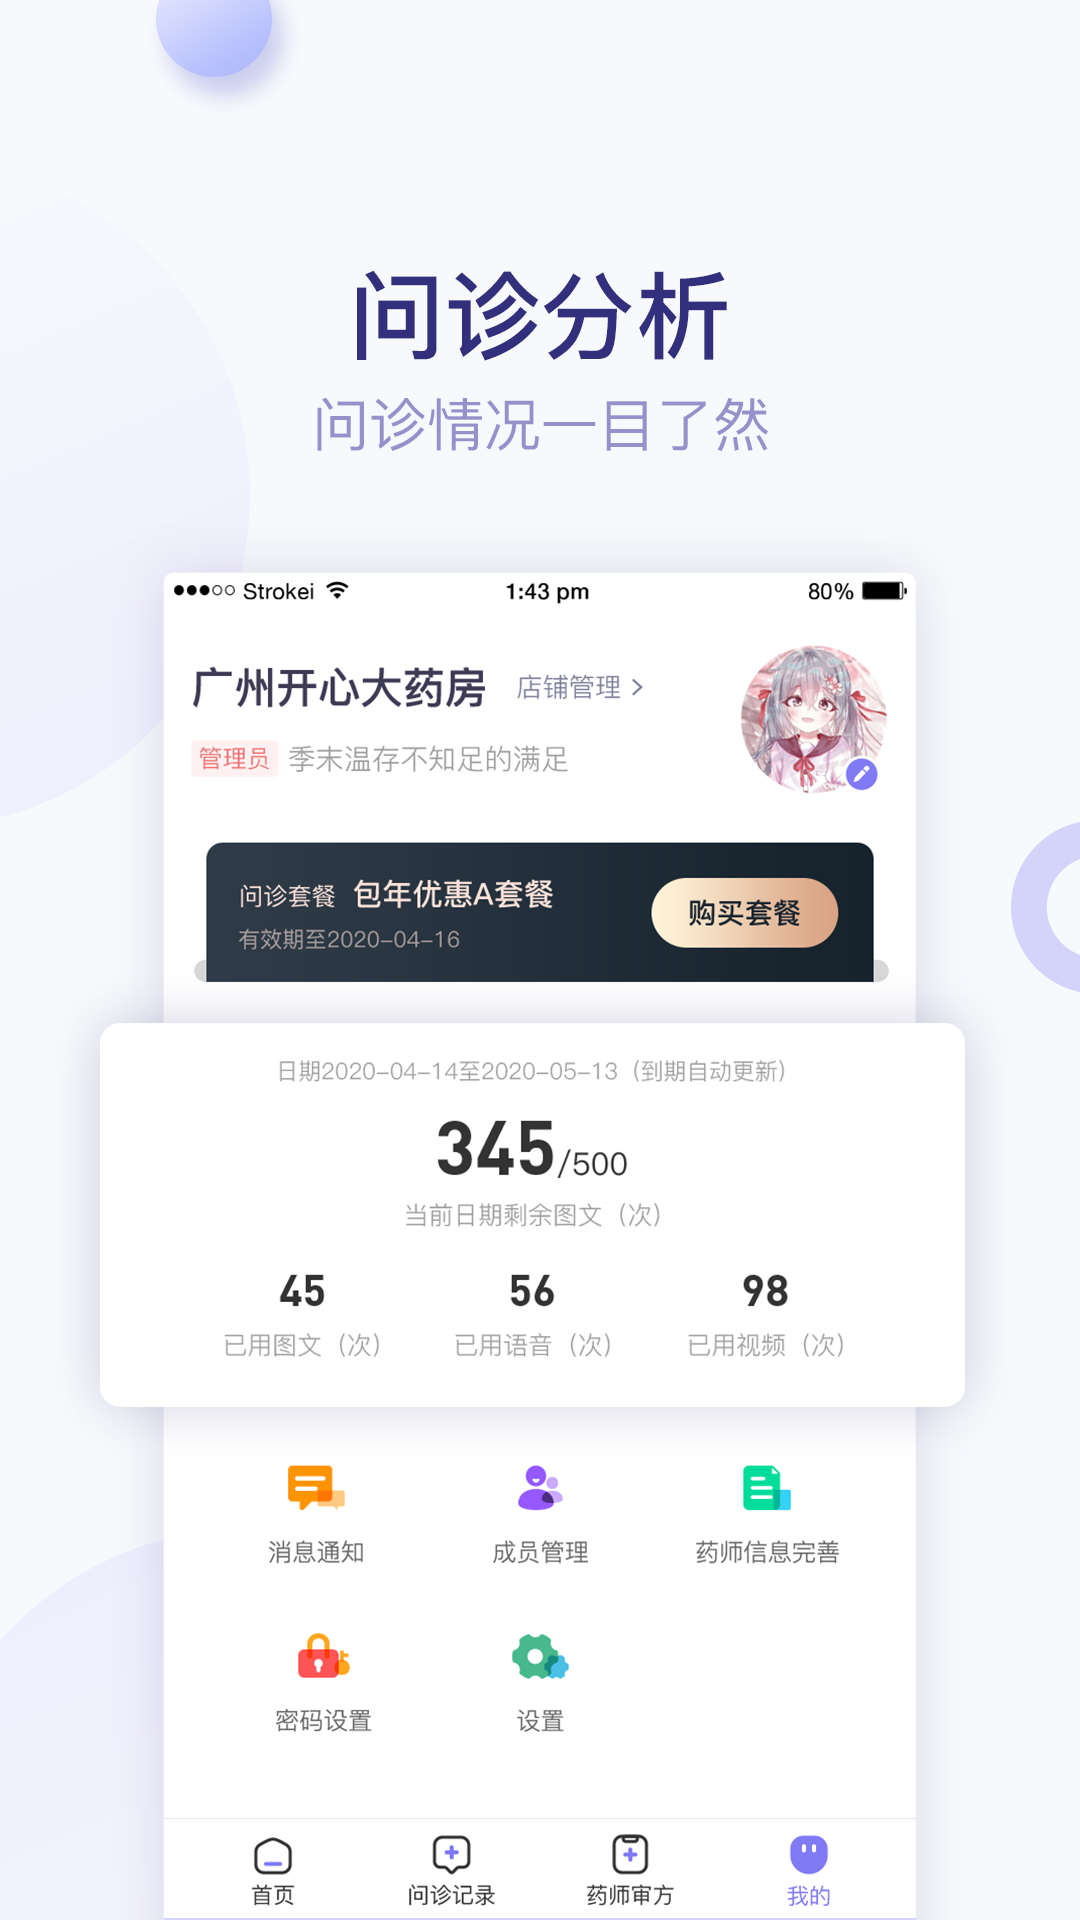 http://www.xitongcheng.cc/uploads/allimg/210425/x1c4sth4my2.png